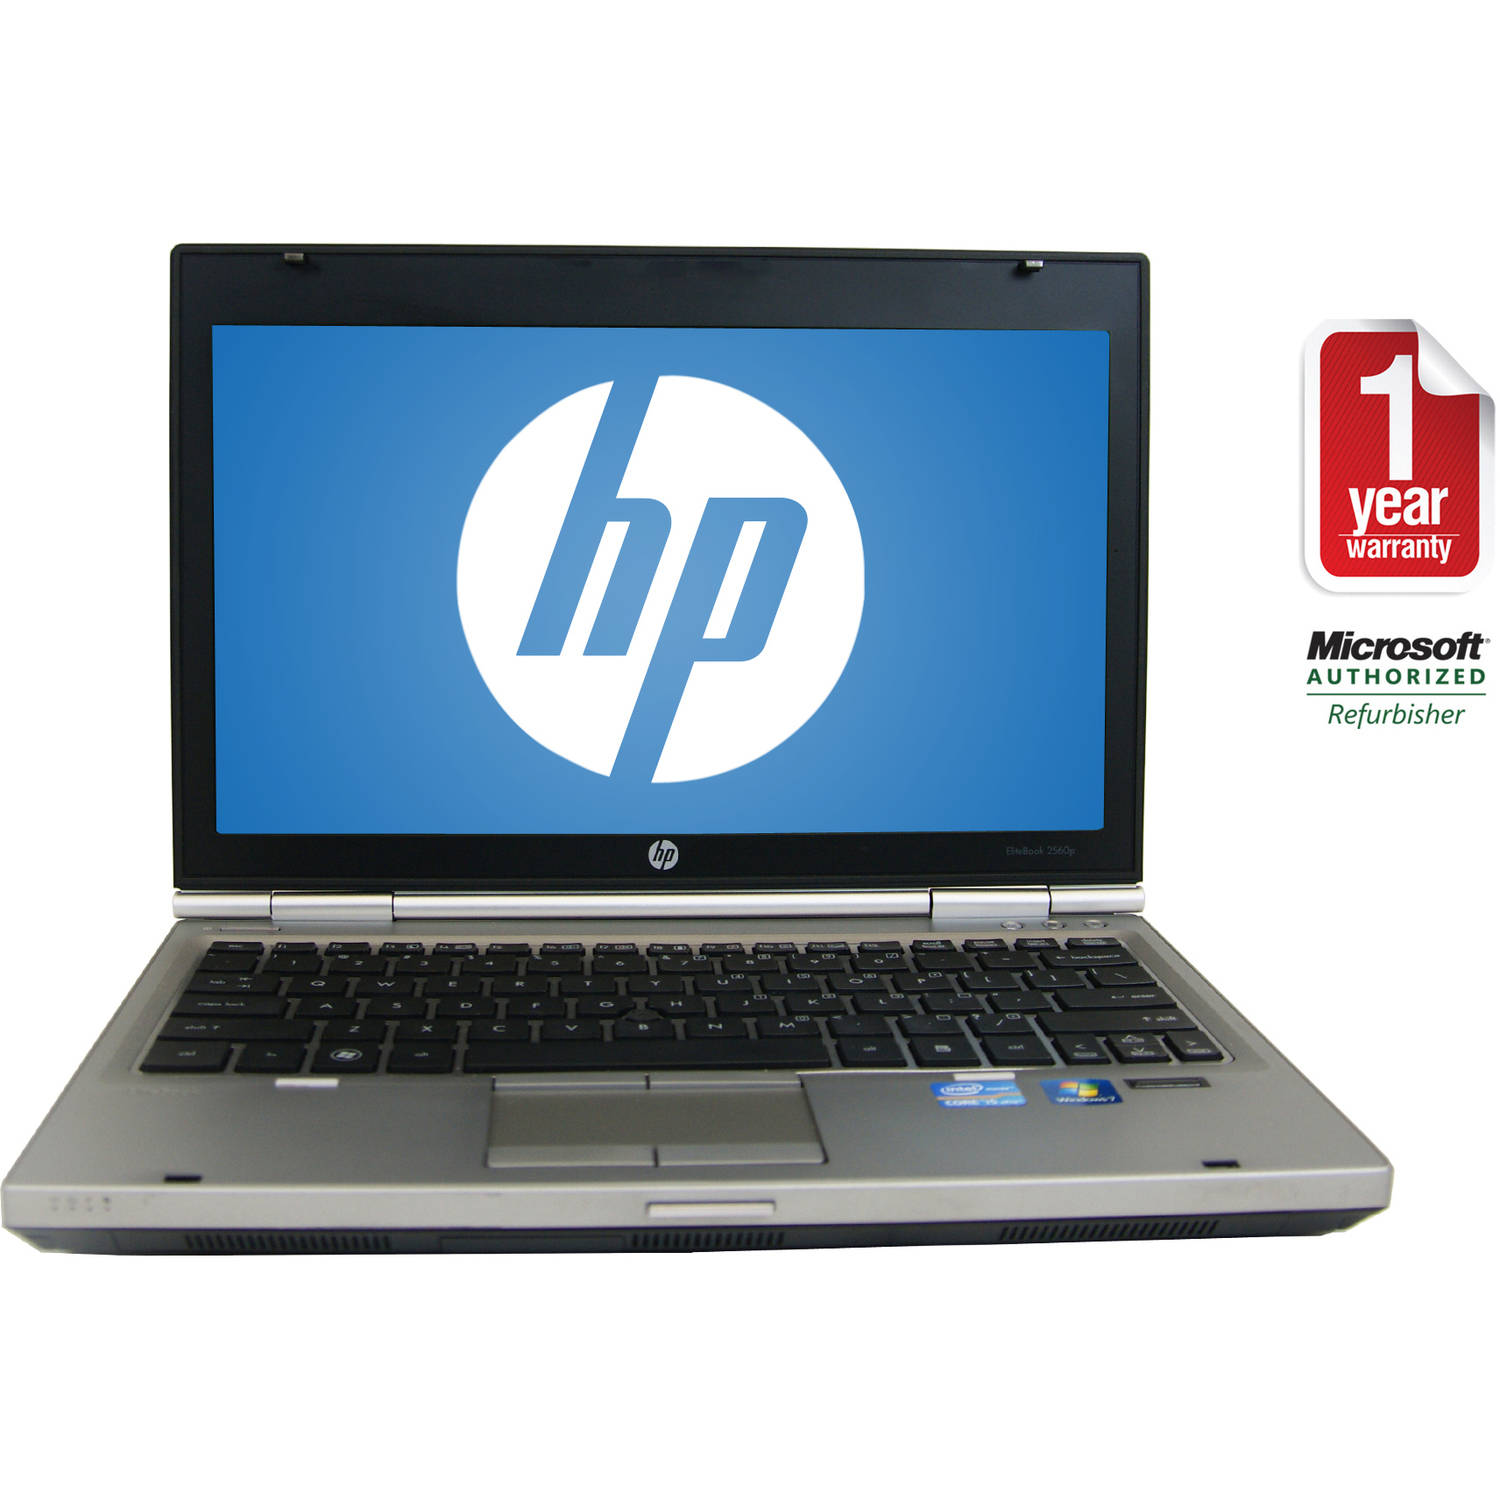 "Refurbished HP Black 12.5"" 2560P Laptop PC with Intel Core i3-2310M Processor, 4GB Memory, 320GB Hard Drive and Windows 7 Home Premium"